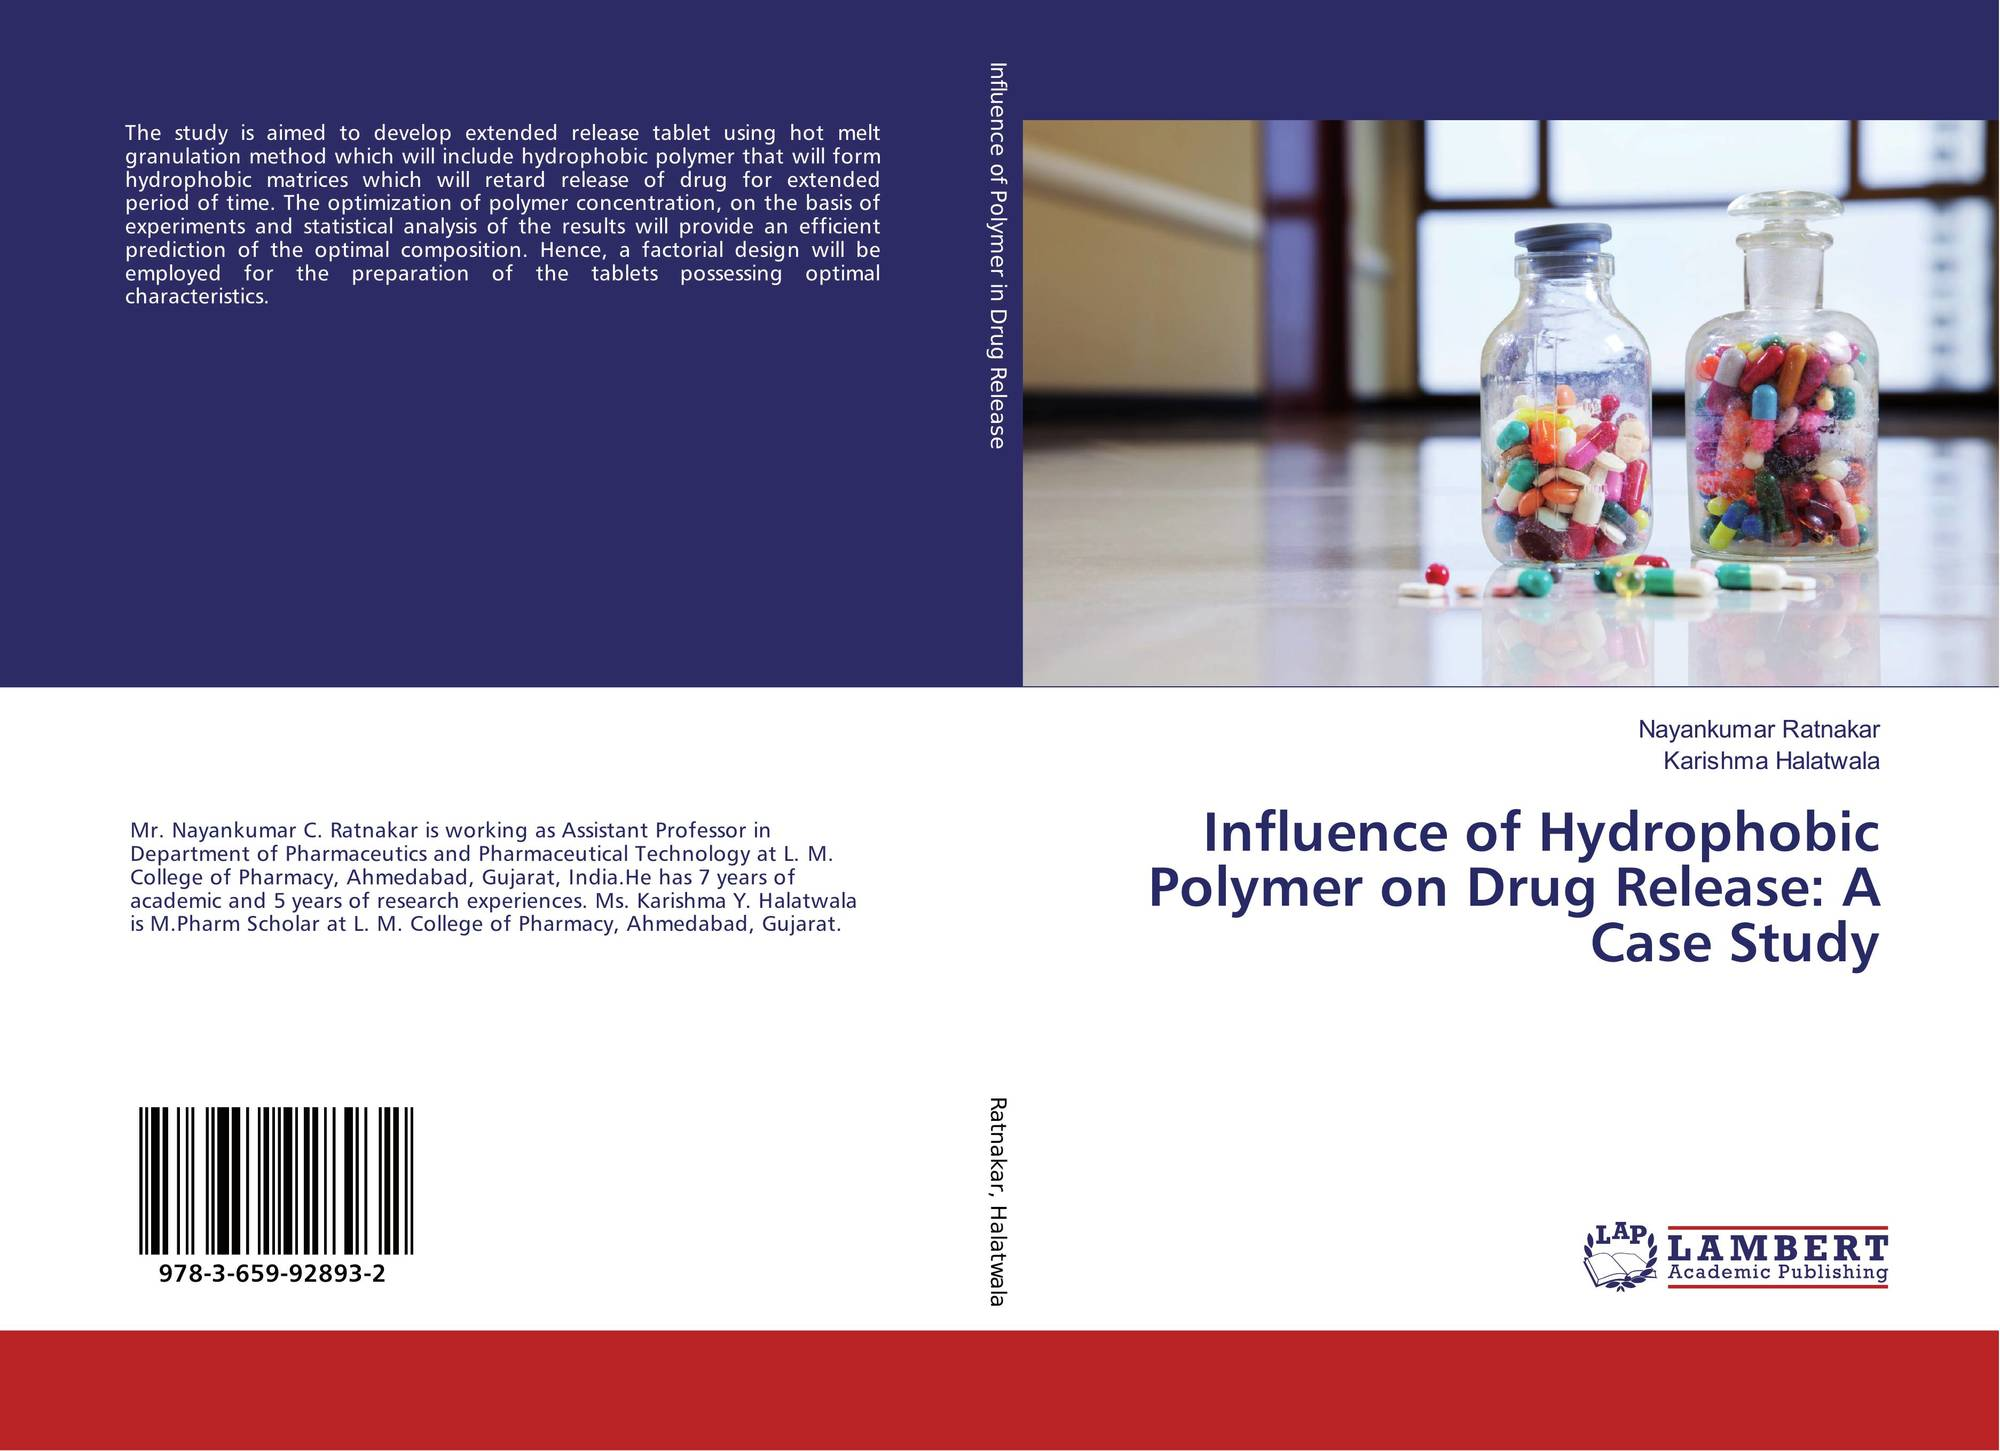 tanglin polymers case study Chan install jobs i want to hire i read the attached case study tanglin polymers and answer the three questions at the end of the case.